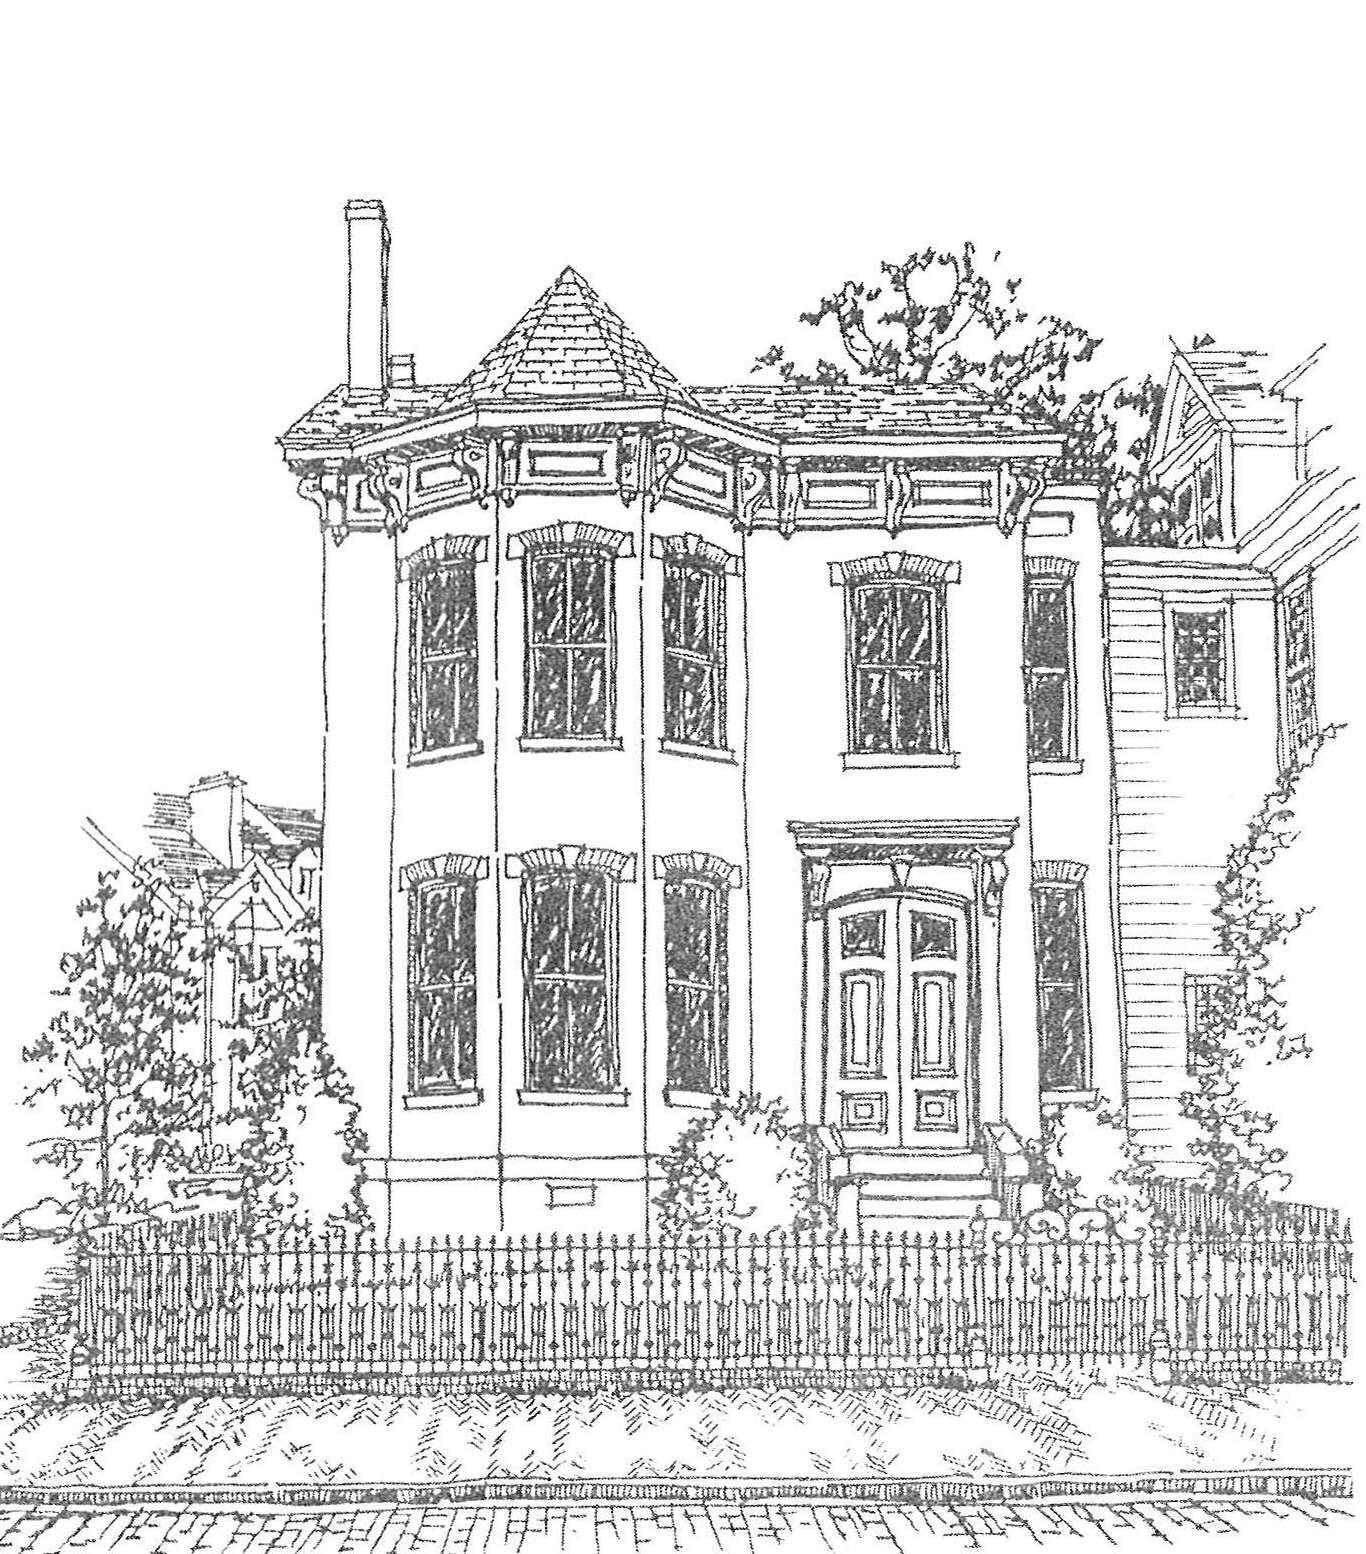 File:Yarmouth House pencil drawing.jpg - Wikipedia